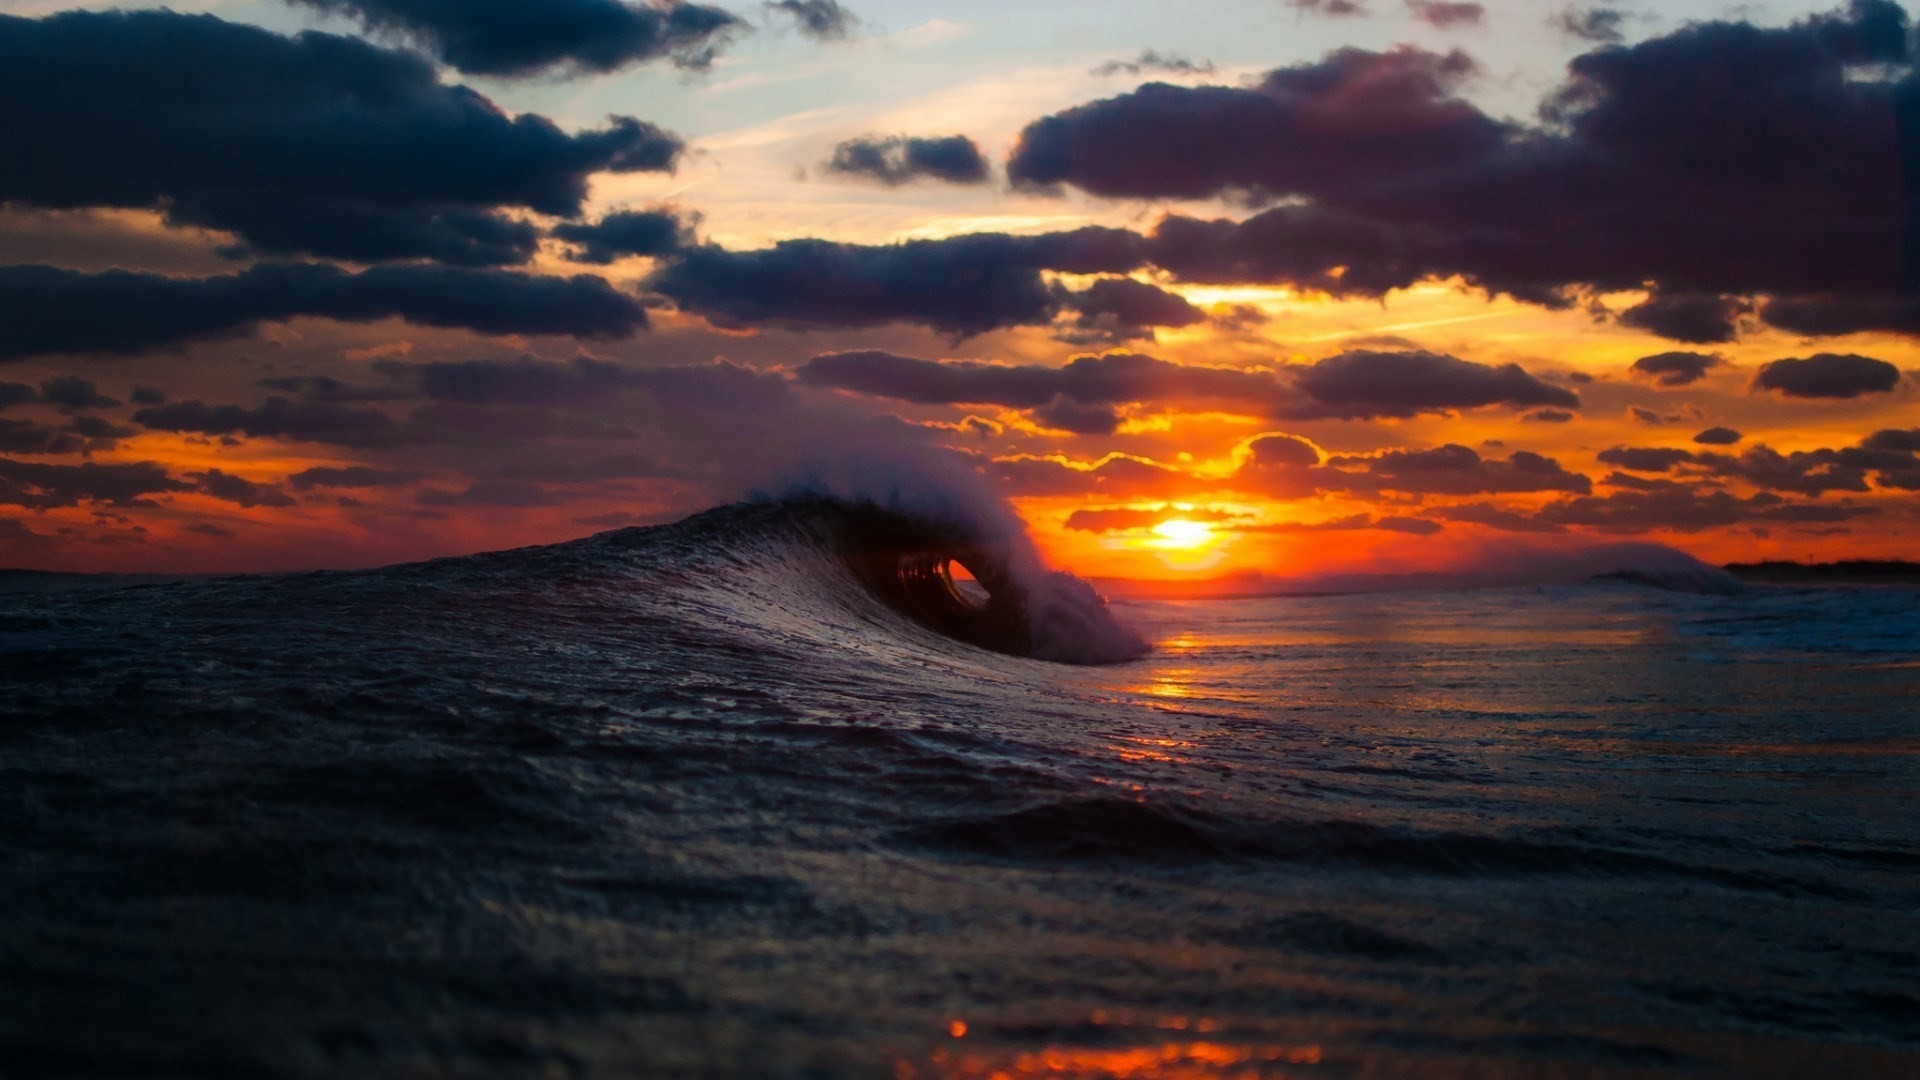 Download Wallpaper 1920x1080 Sea Surf Wave Sunset Full HD 1080p